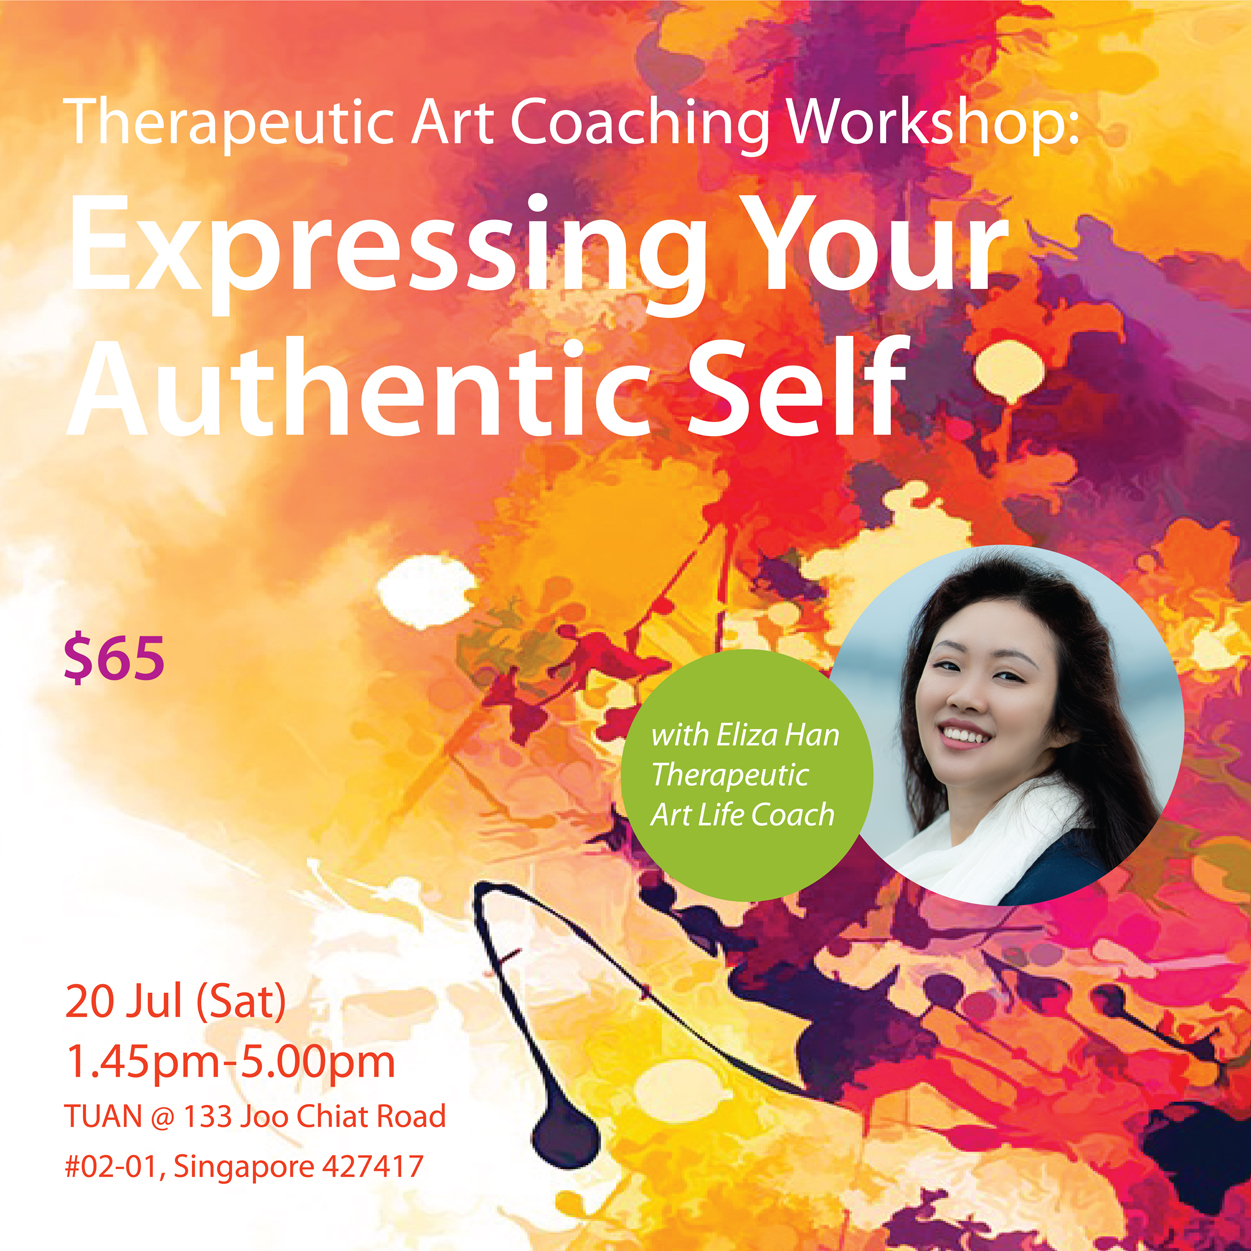 Therapeutic Art Coaching Workshop1.jpg